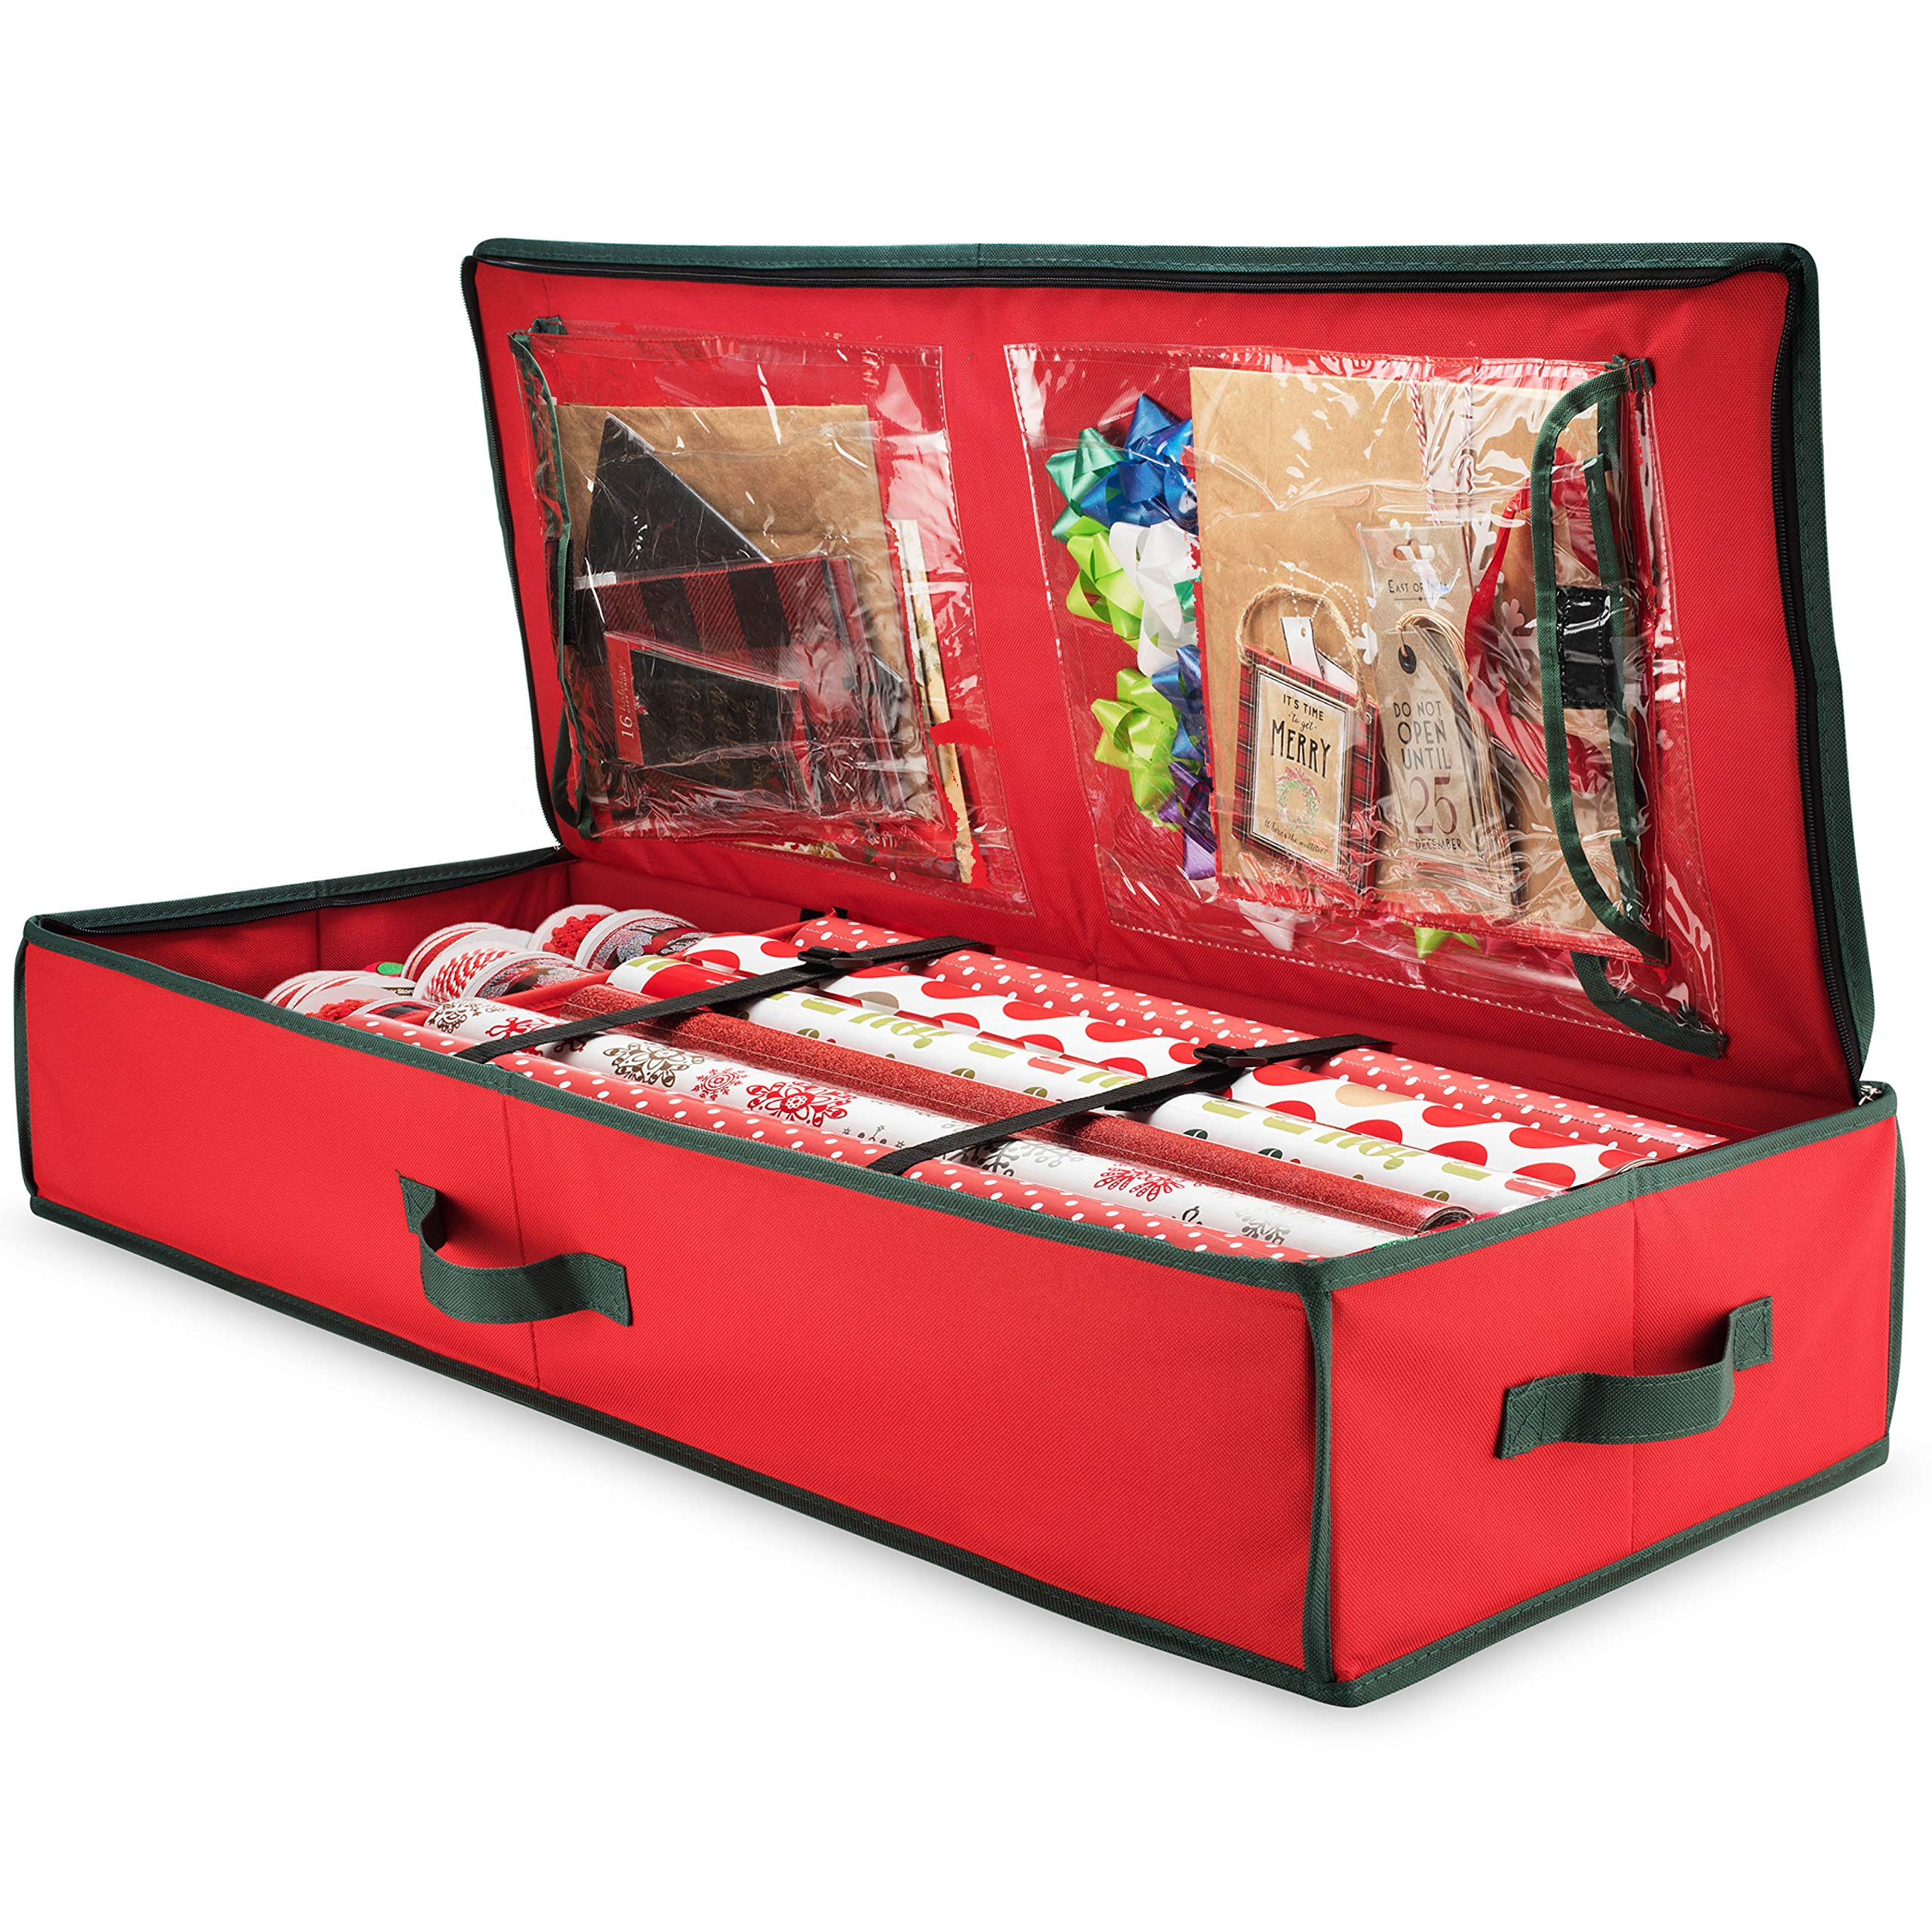 Premium Wrap Organizer, Interior Pockets, fits 18-24 Standers Rolls, Underbed Storage, Wrapping Paper Storage Box and Holiday Accessories, 40'' Long - Tear Proof Fabric - 5 Year Warranty by ZOBER